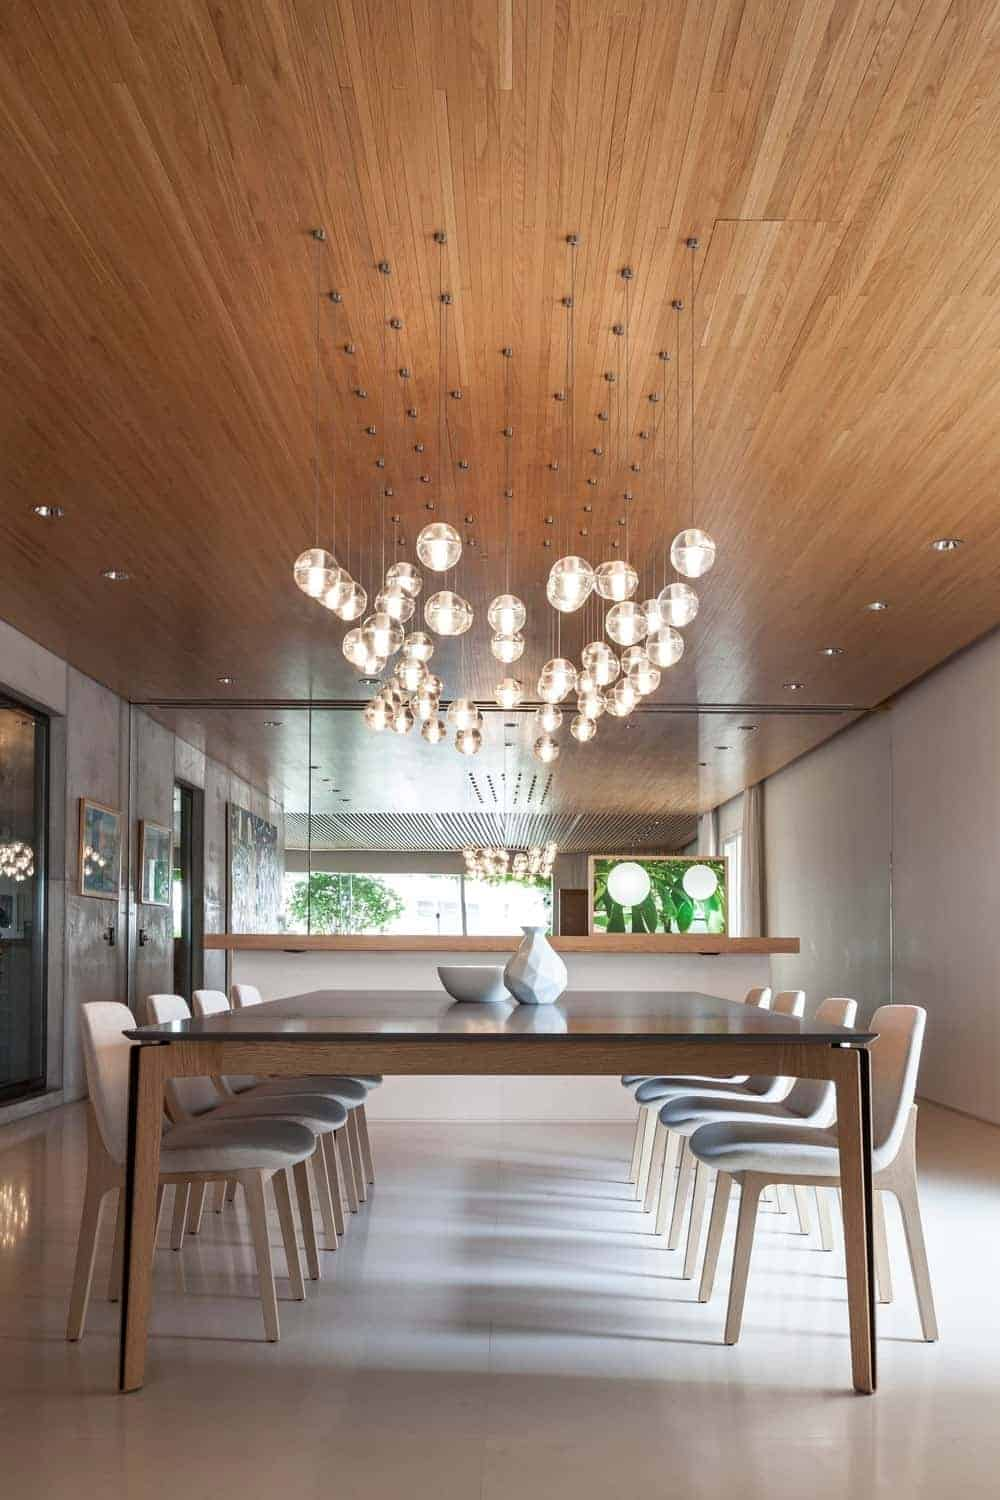 A cozy dining room illuminated by glass globe pendants that hung from the wood-paneled ceiling. It is furnished with beige cushioned chairs and a massive dining table topped by a white bowl and a geometric vase.